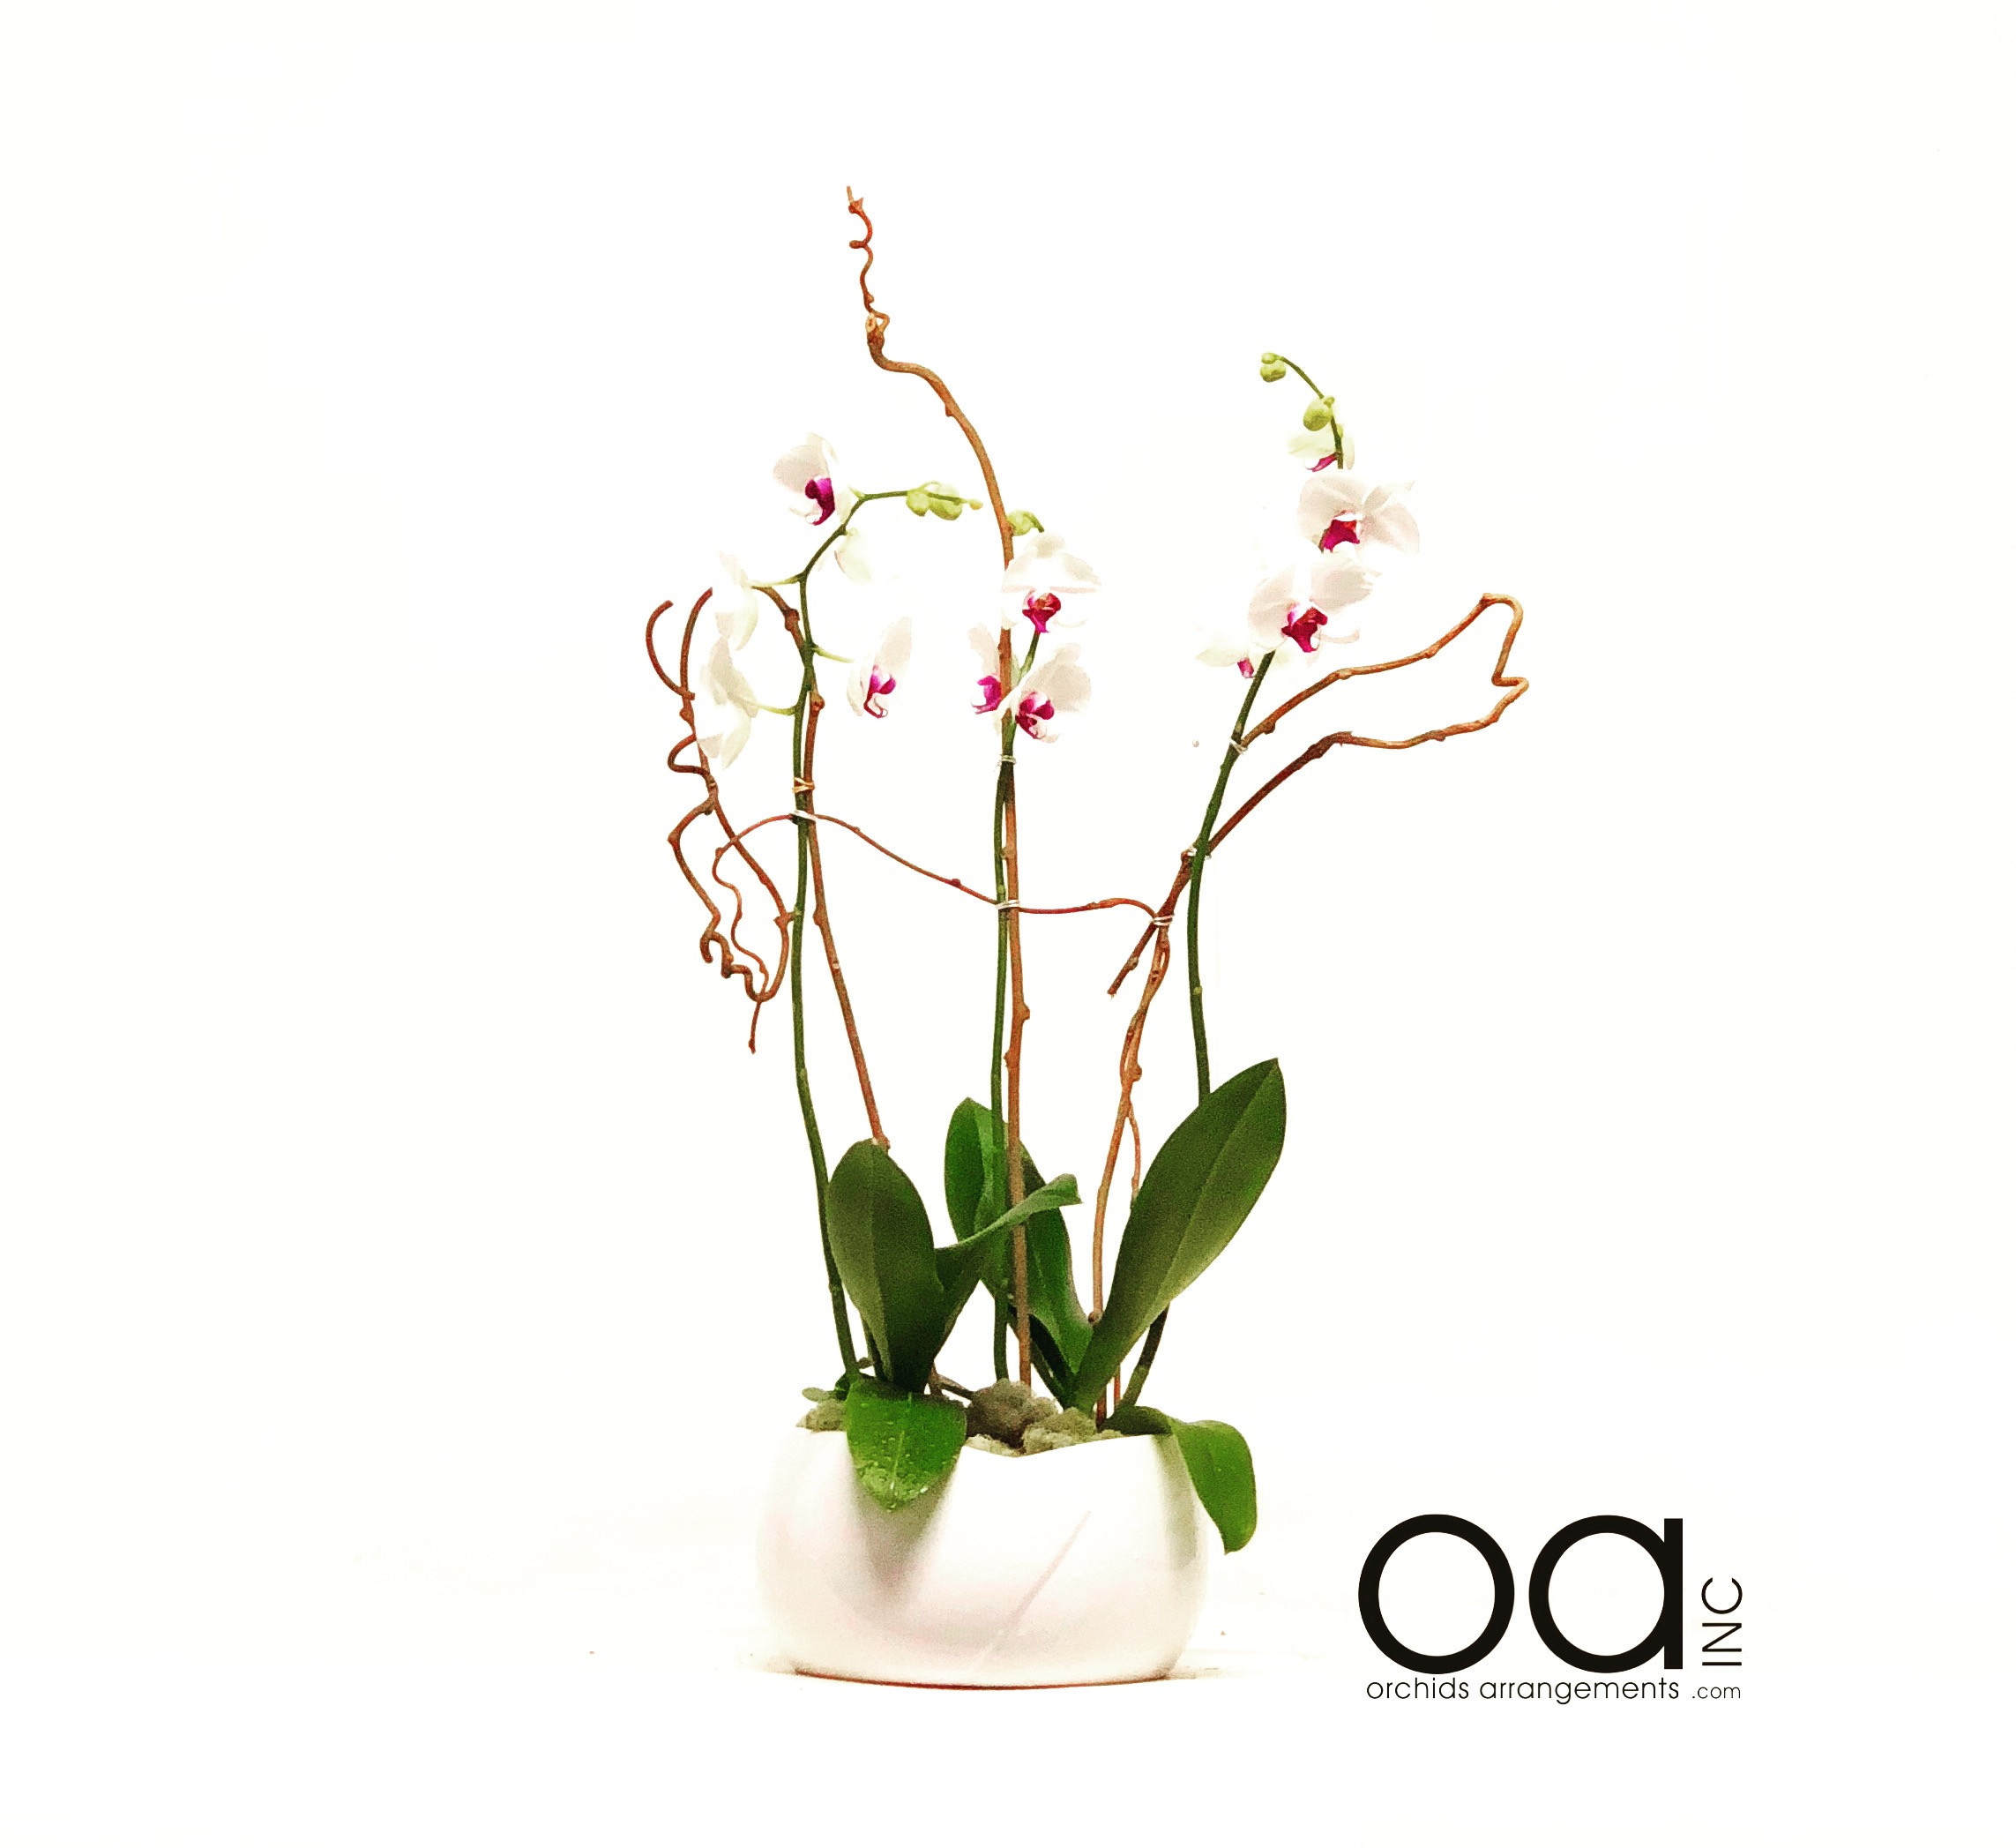 29 Best Cheap Flowers with Free Vase 2021 free download cheap flowers with free vase of send 3 orchid arrangement bella vase in miami fl orchids in send 3 orchid arrangement bella vase